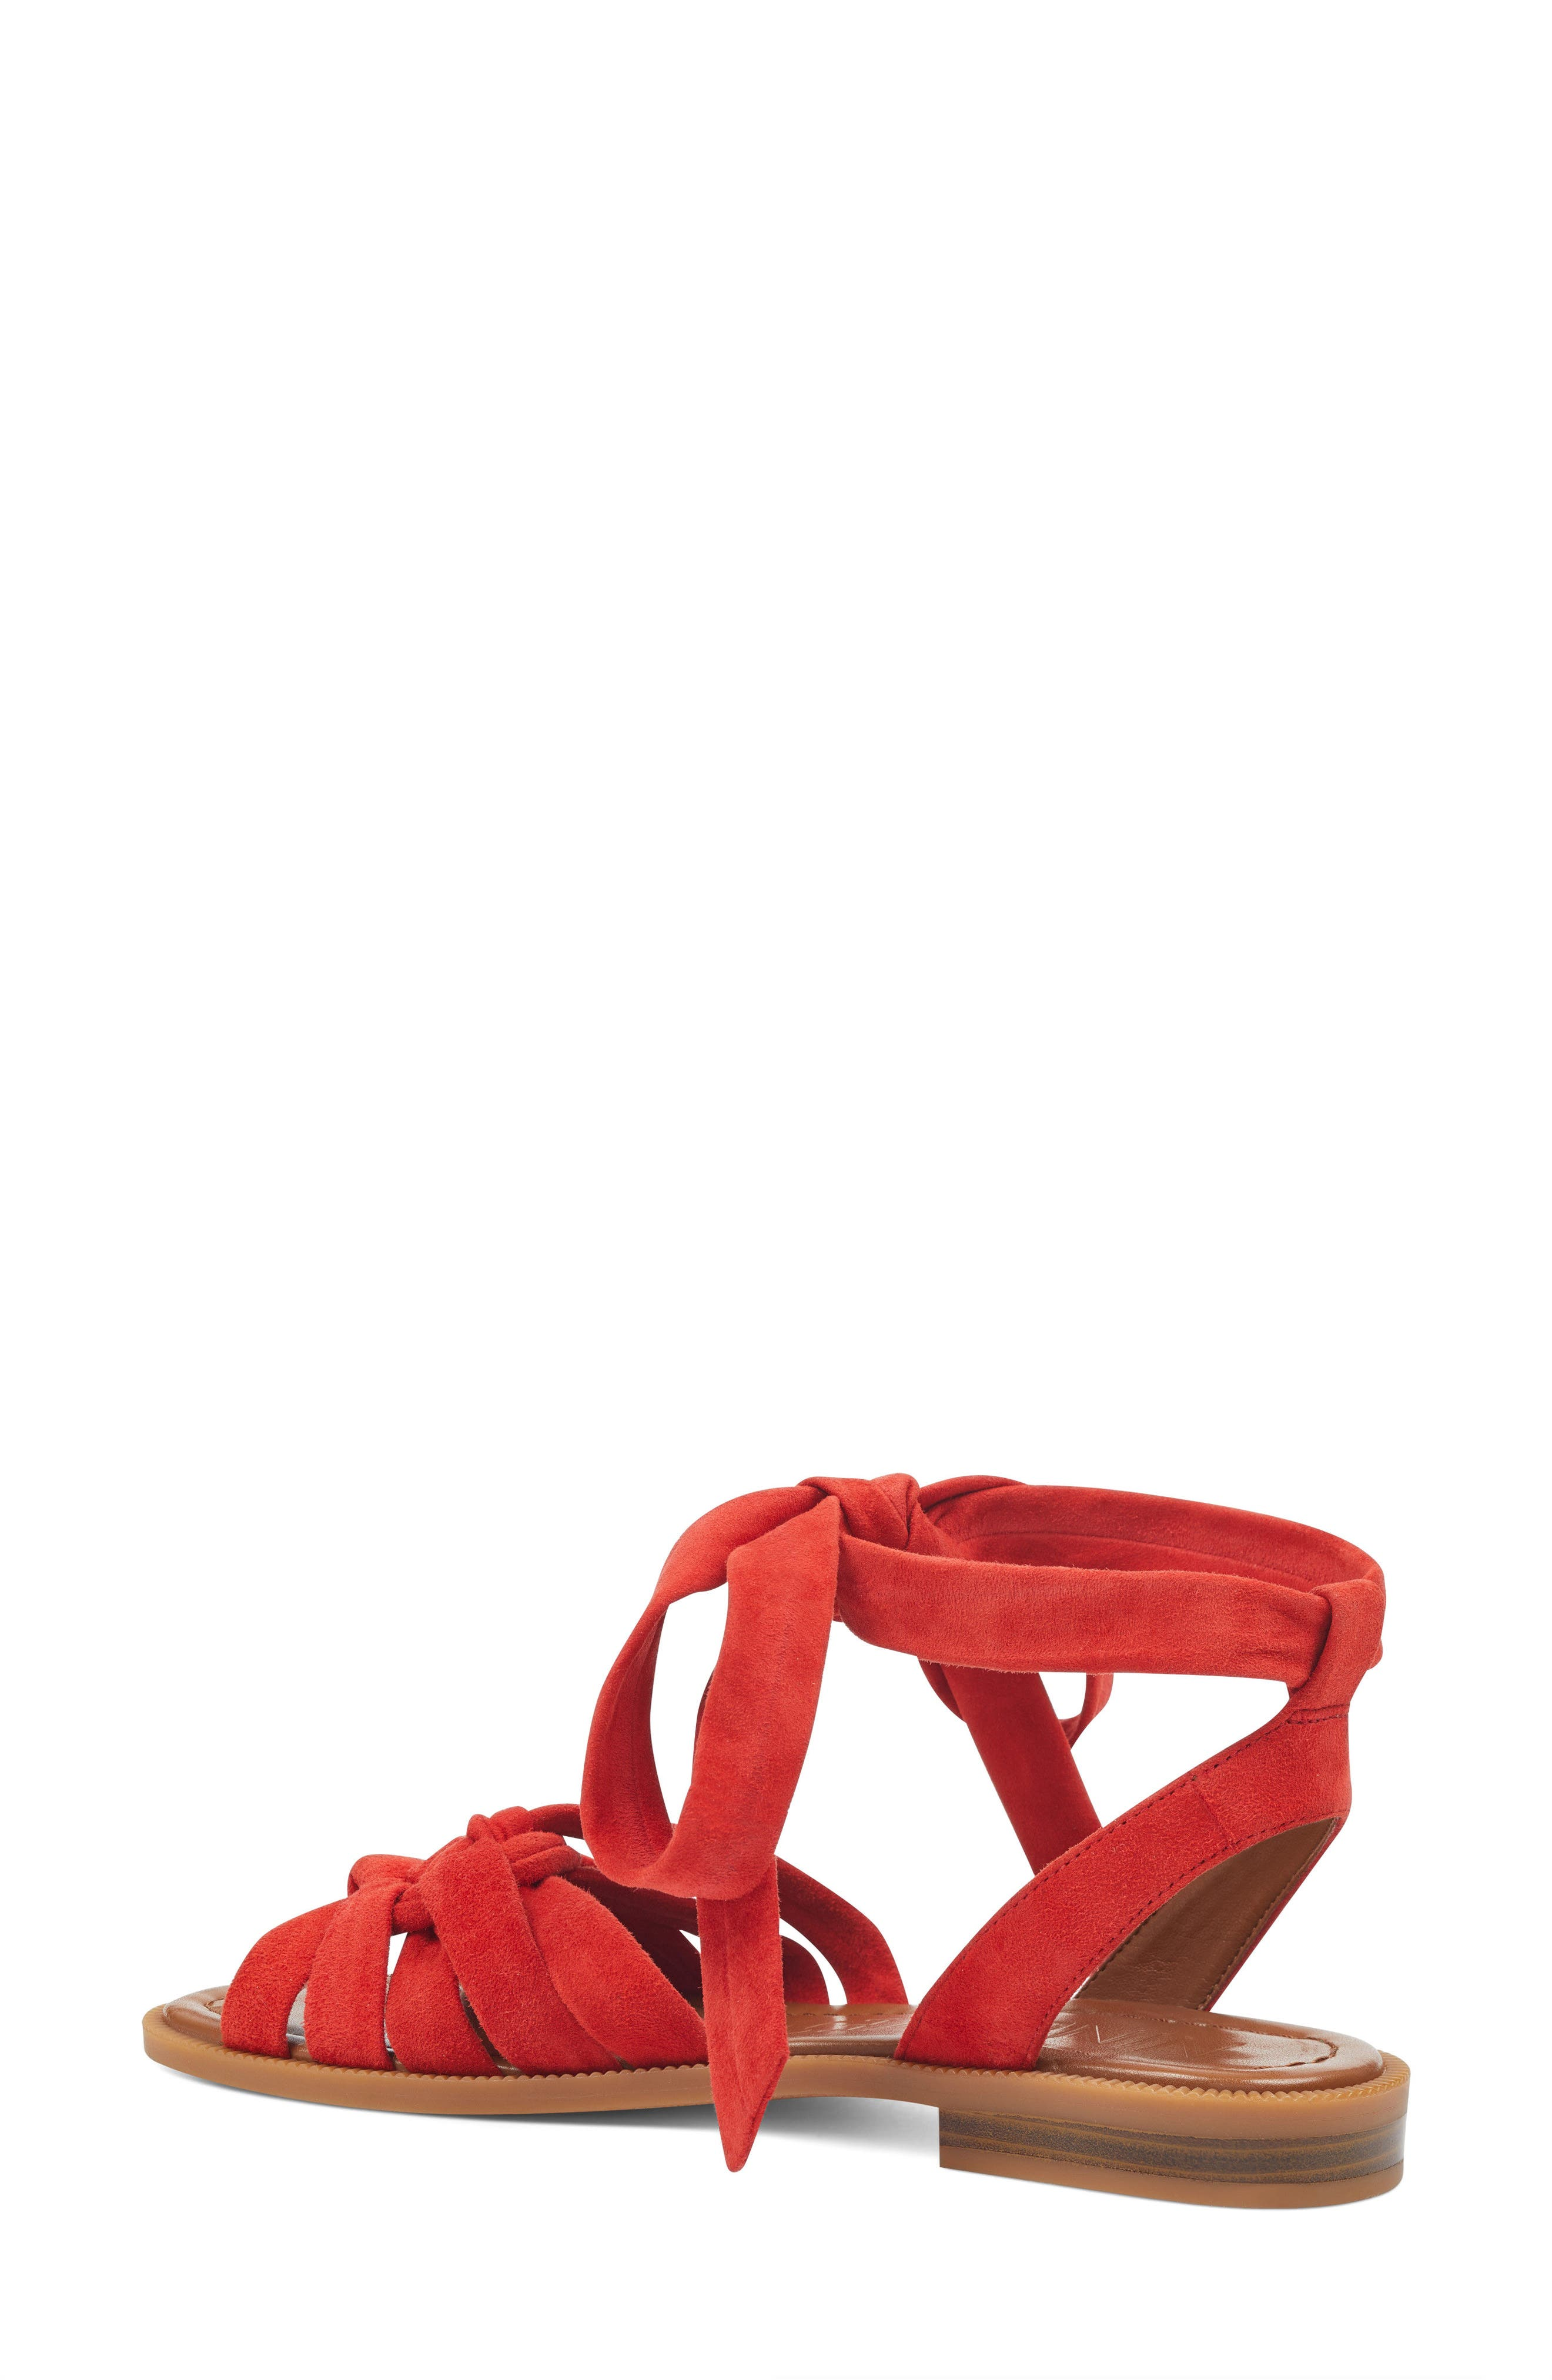 Xameera Knotted Sandal,                             Alternate thumbnail 2, color,                             Red Suede